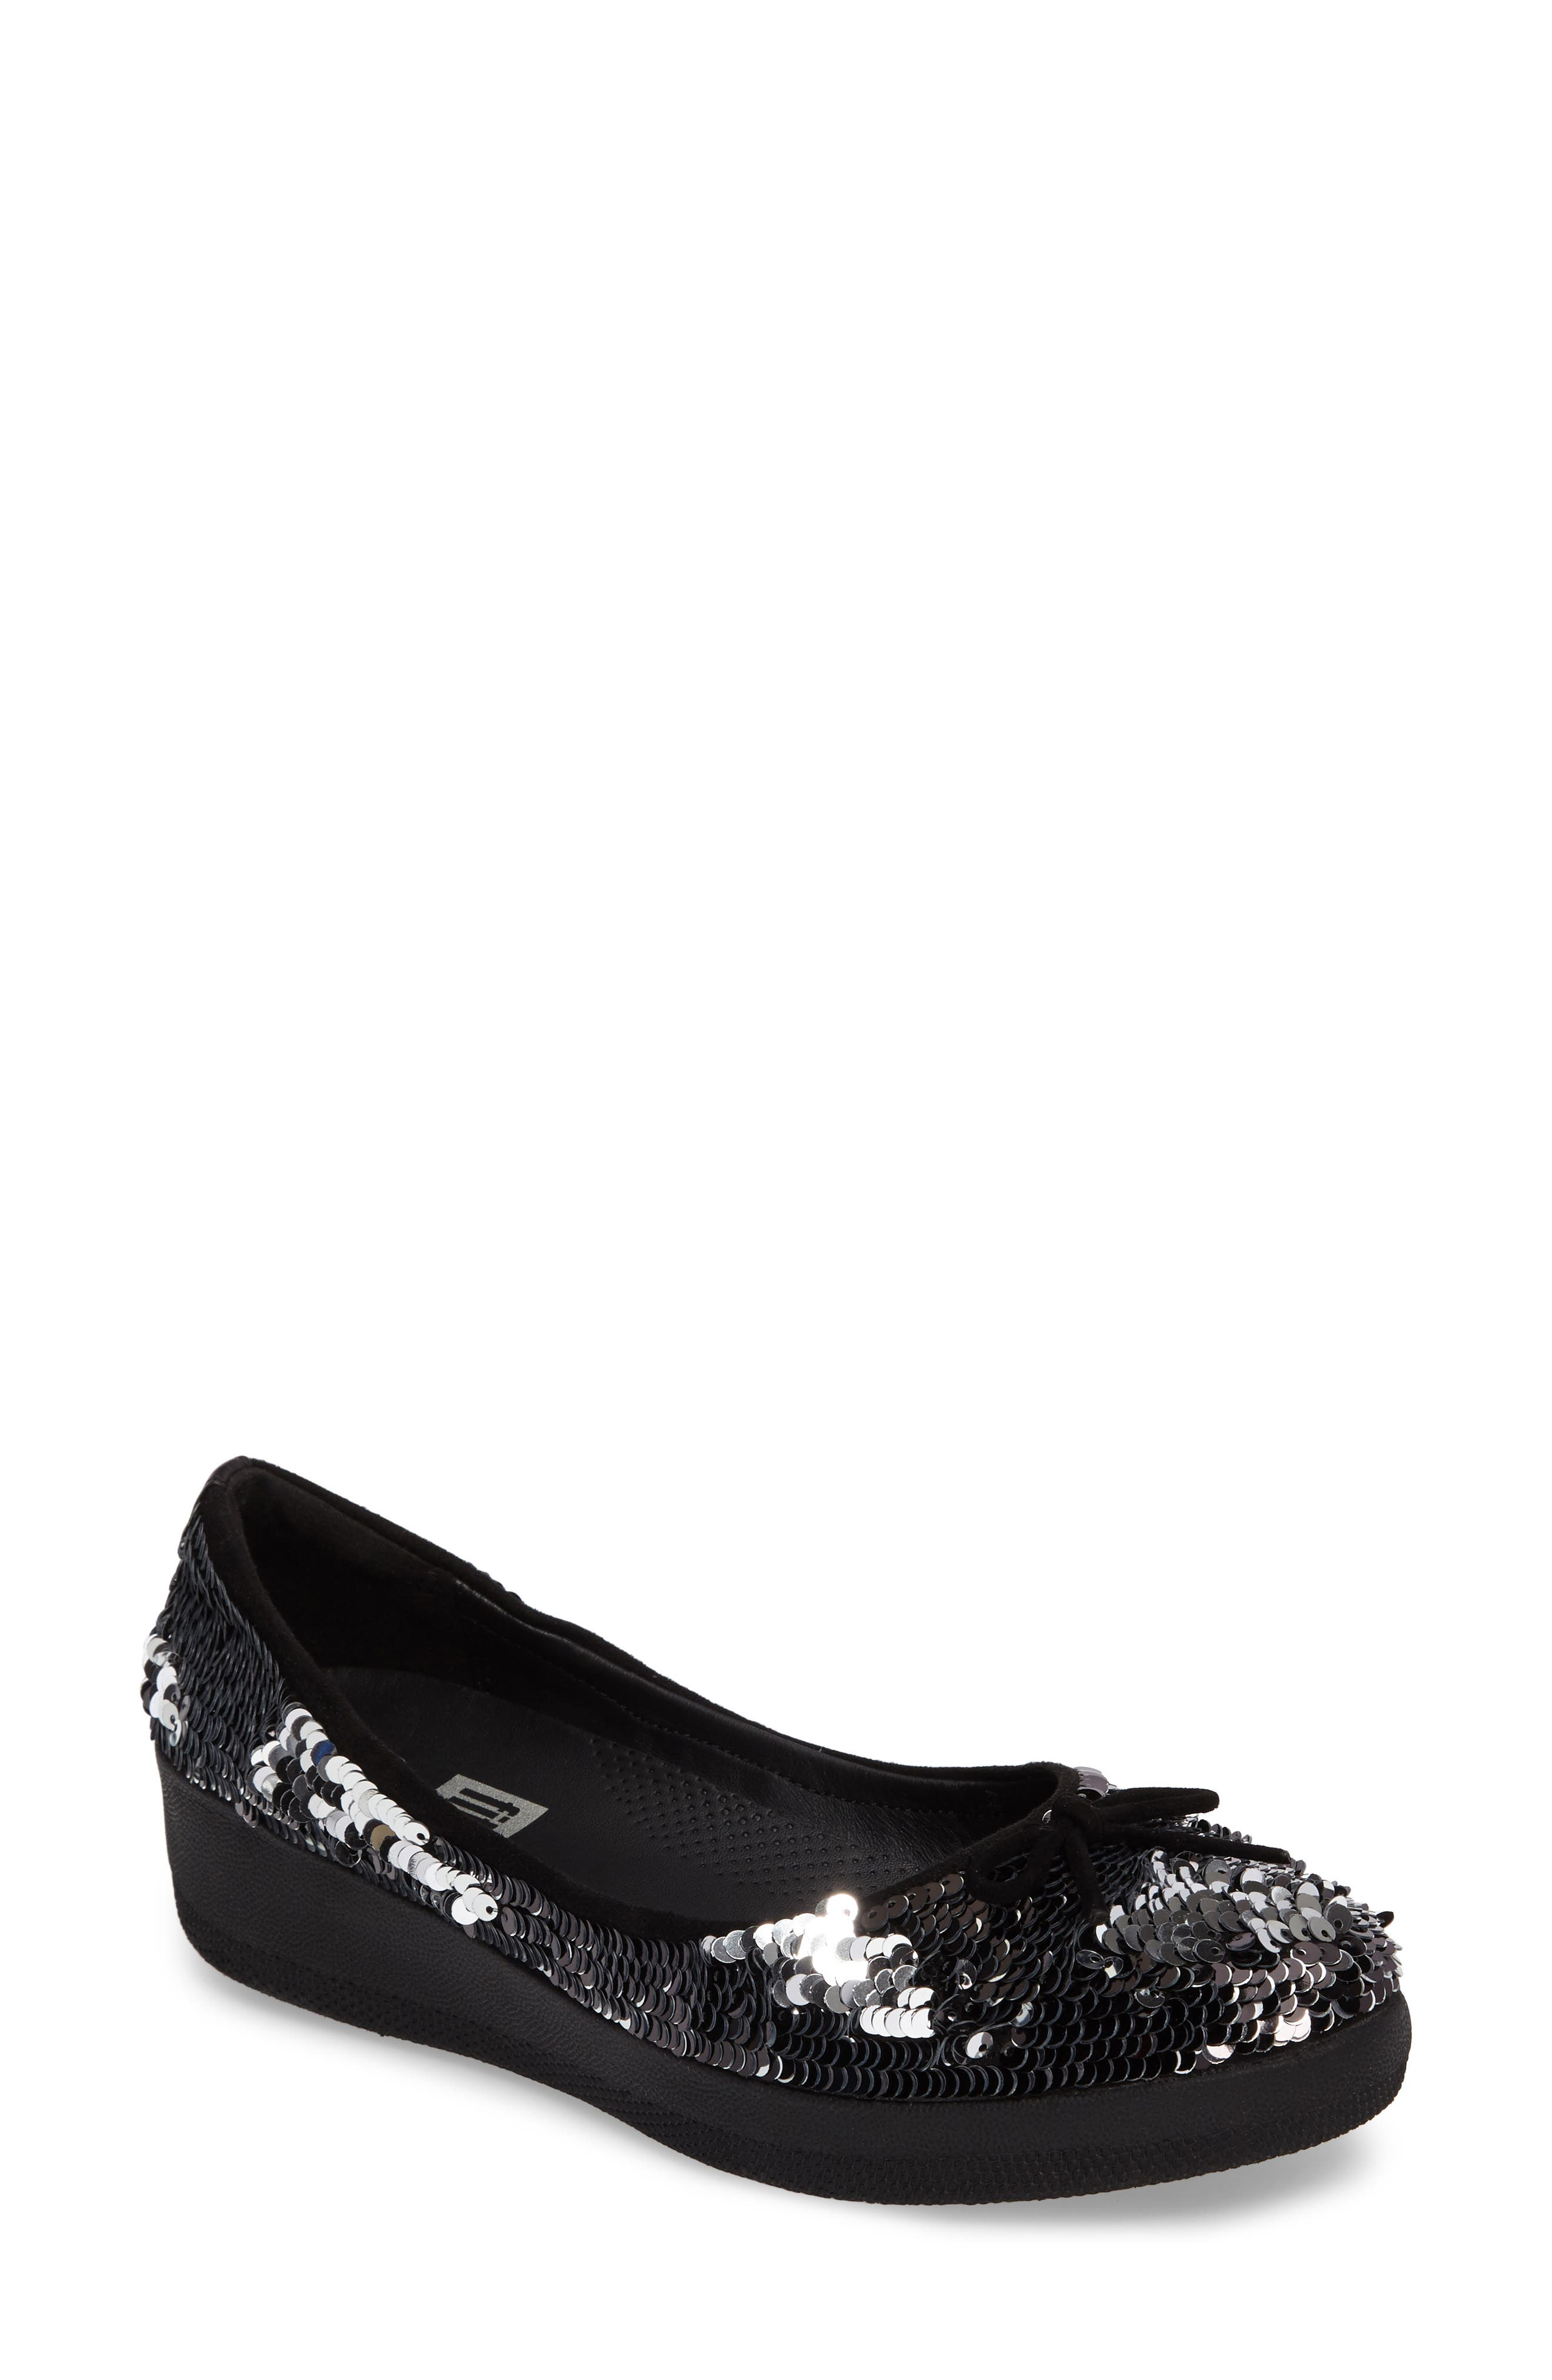 Superballerina Sequin Ballet Flat,                             Main thumbnail 1, color,                             Black Fabric